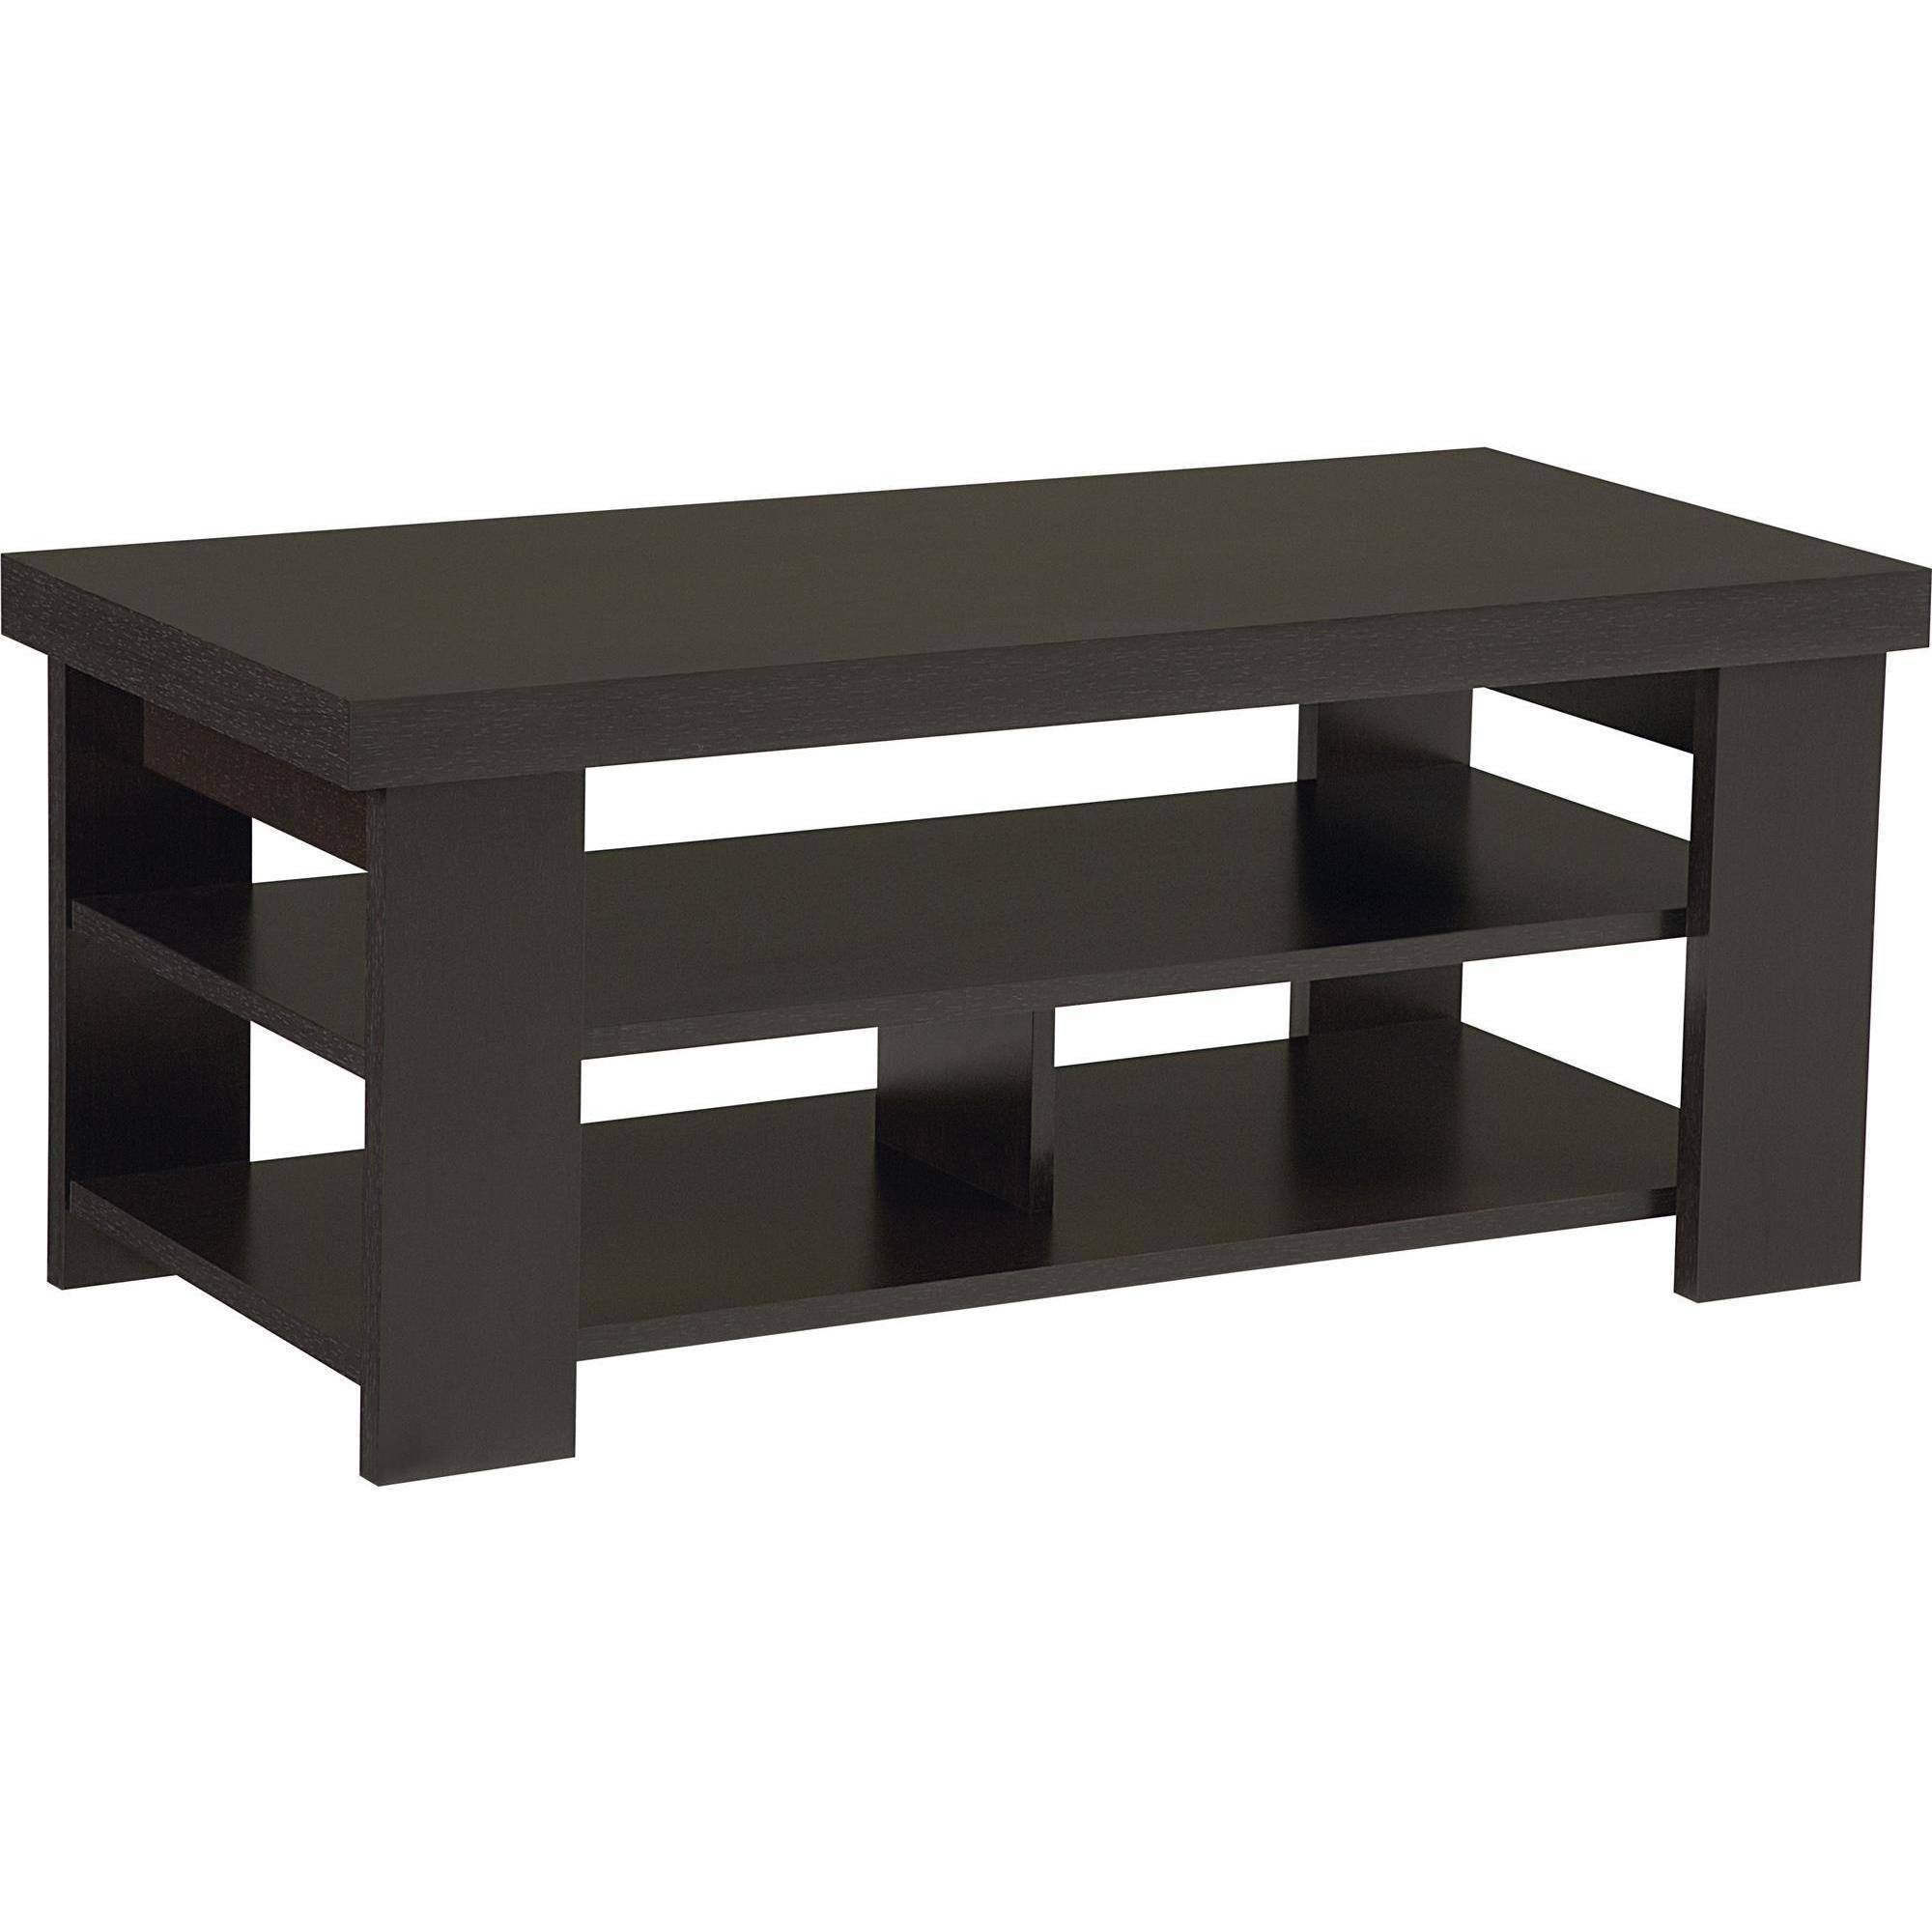 marvellous target round outdoor side table covers plans and pretty legs metal black woodworking cloth covered outstanding tray ideas dark wooden top kmart cover folding marble